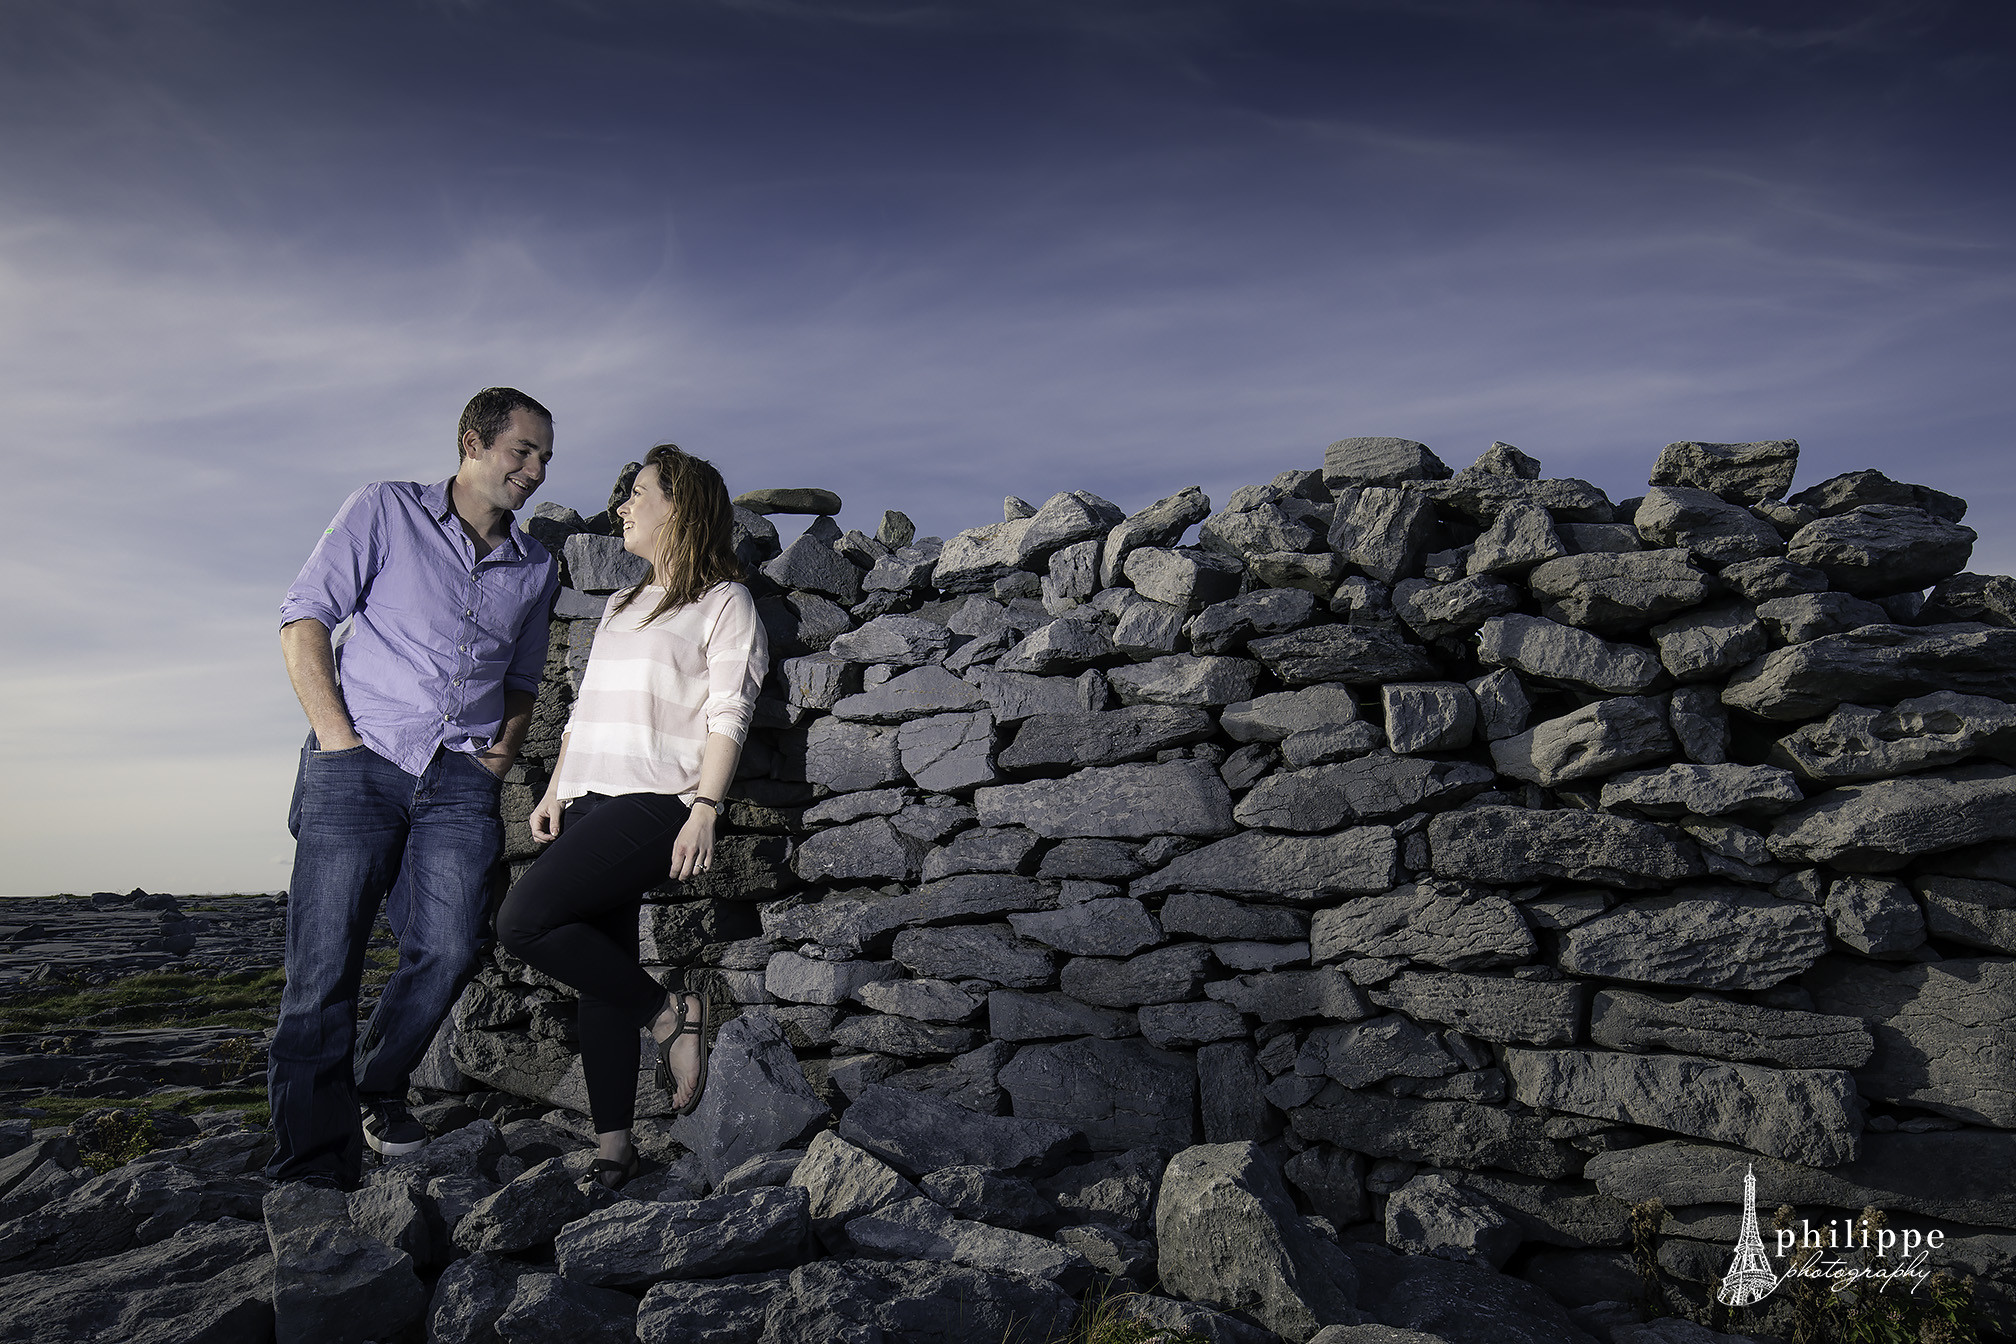 Philippe-photography-wedding-clare-ireland-shoot-LorraineTristan2